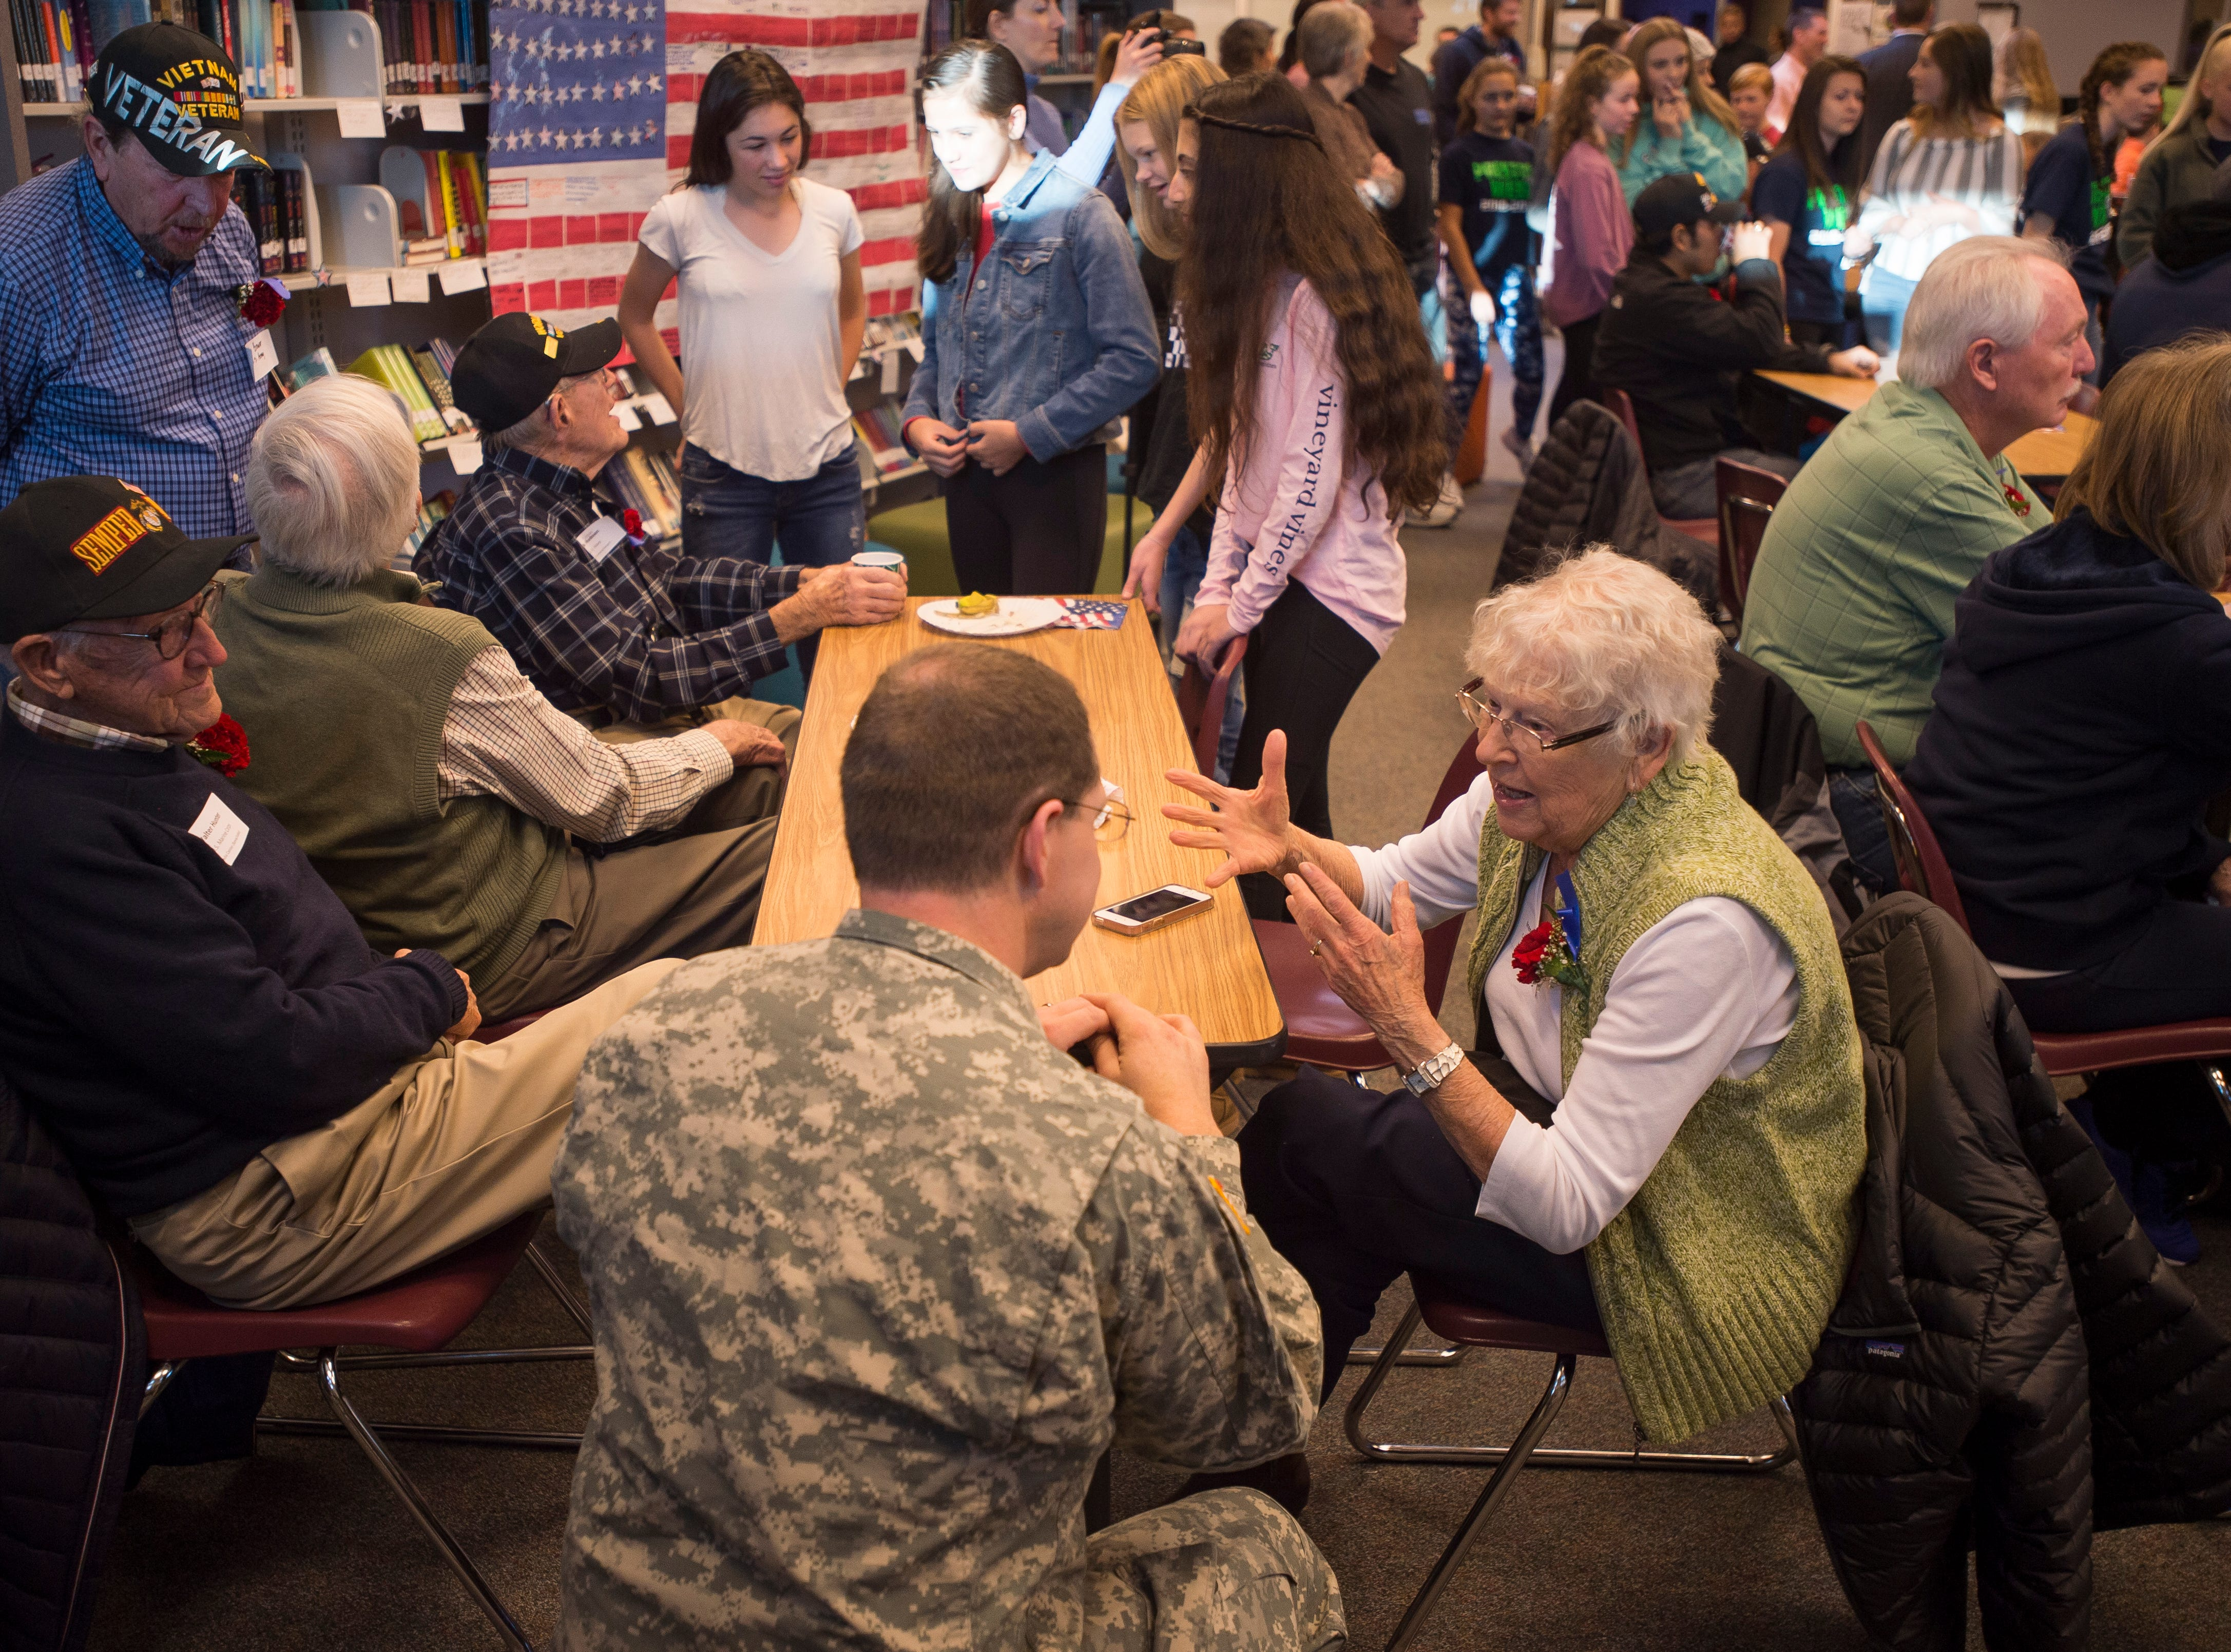 World War II Cadet Nurse Corps veteran Irene Hunter, right, and her husband of nearly 72 years, United States Marine Corps veteran Walter Hunter, left, talk with Army Reserve veteran Tom Scott during Preston Middle School's fourth annual Veterans Day Breakfast on Friday, Nov. 9, 2018, at Preston Middle School in Fort Collins, Colo.